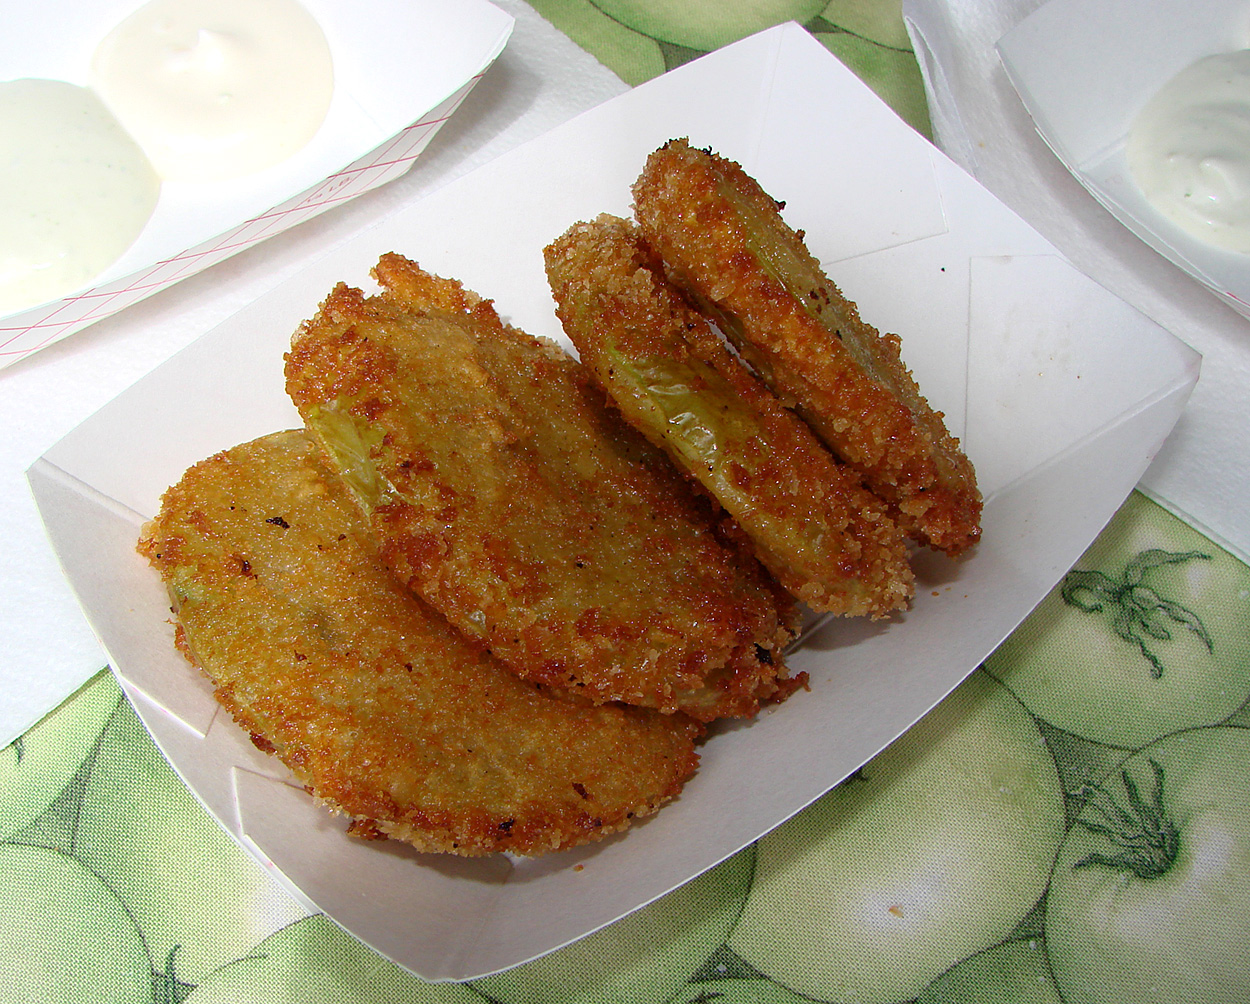 Poi Battered Fish & Fried Green Tomatoes – The Tasty Island